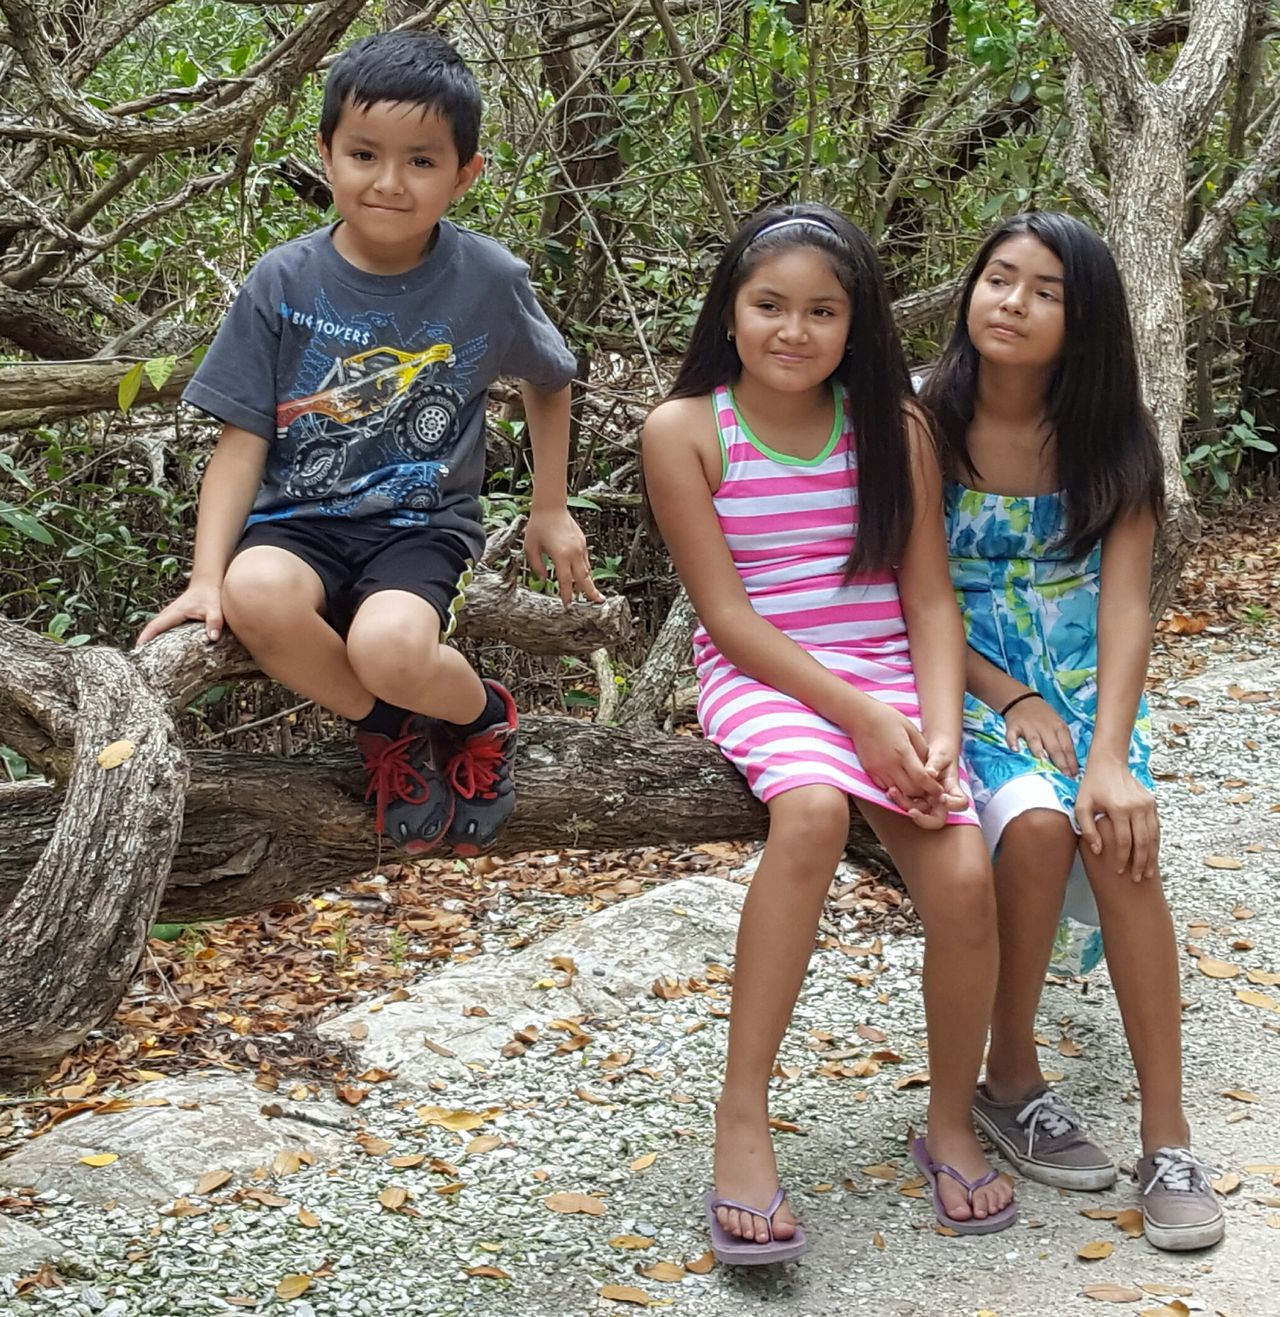 Nephew and nieces Nephew  Nieces Family Matters Family Time Desoto National Park Sitting On A Tree Photoshoot Nature Photography Out And About Bradenton FL Love These Kiddos Siblings How Cute Are They